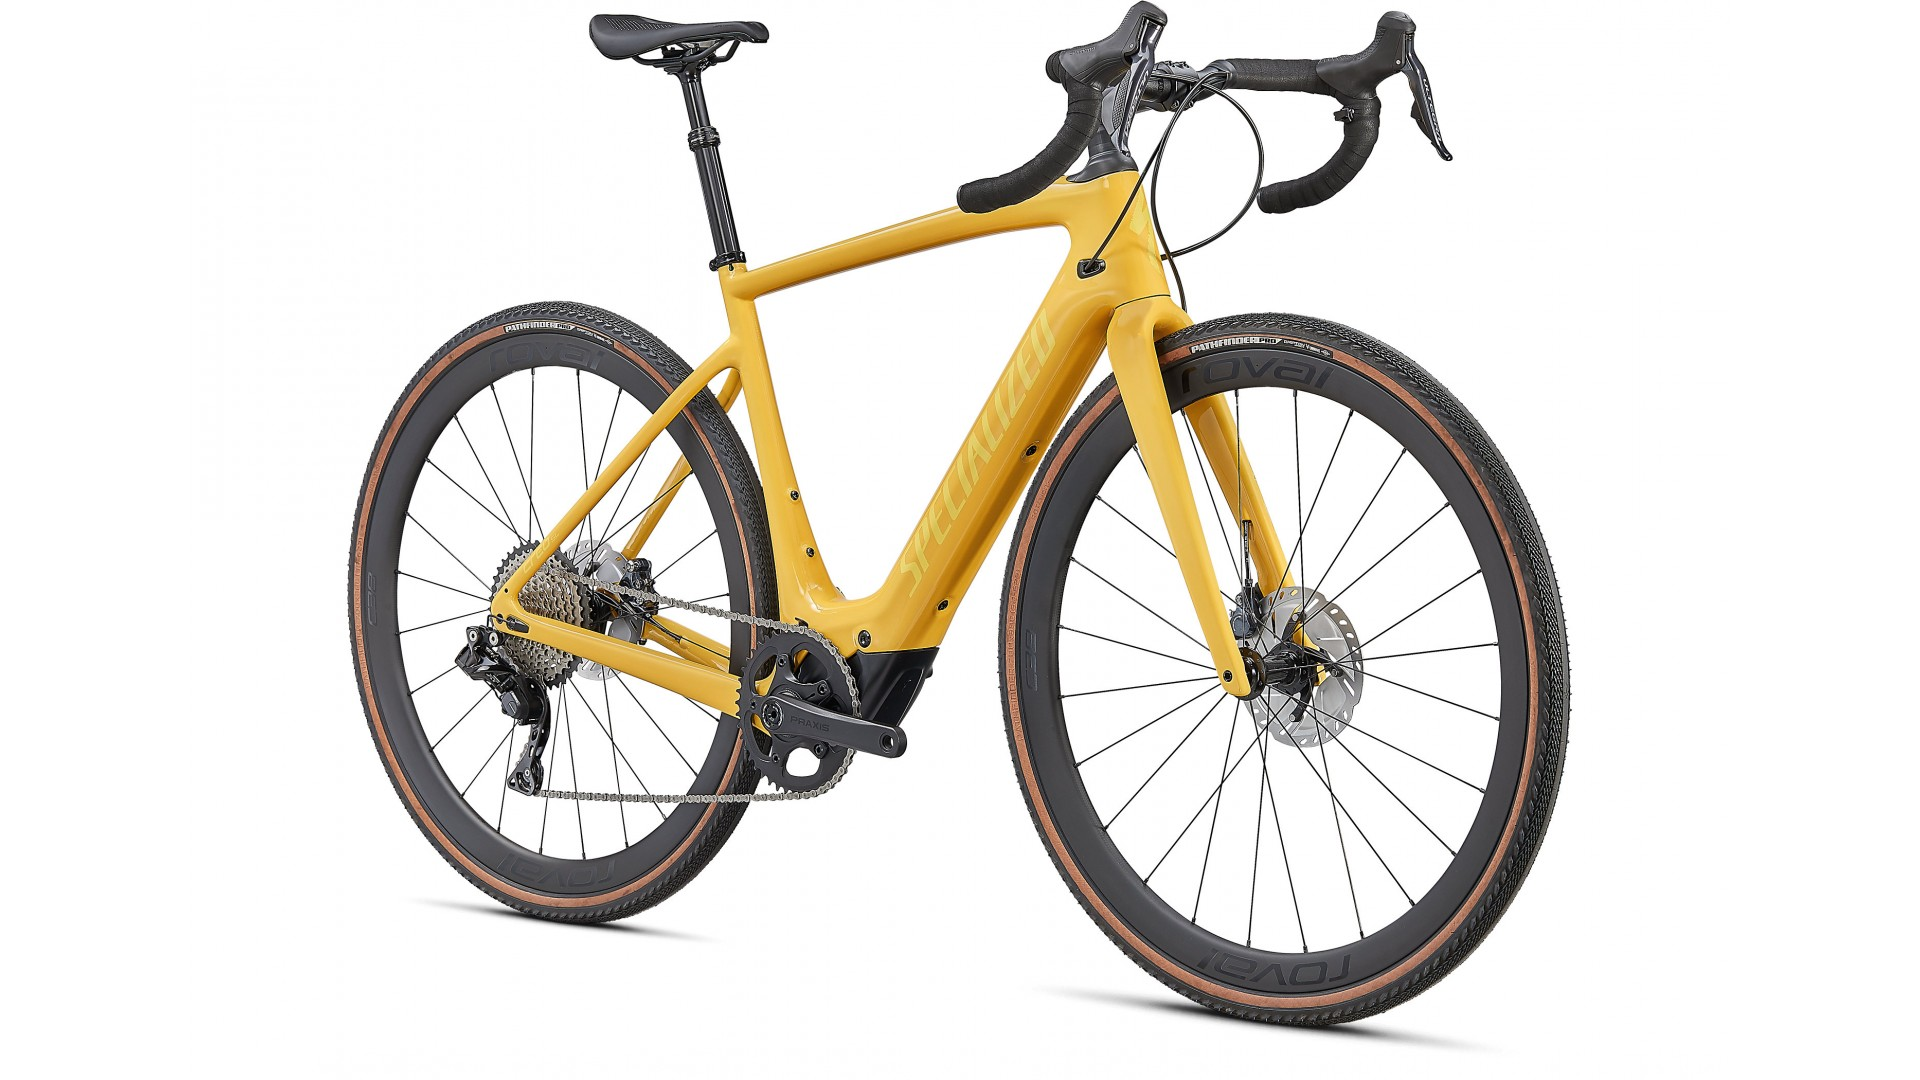 Creo SL Expert Carbon Evo Specialized 2021 Brassy Yellow/Sunset Yellow